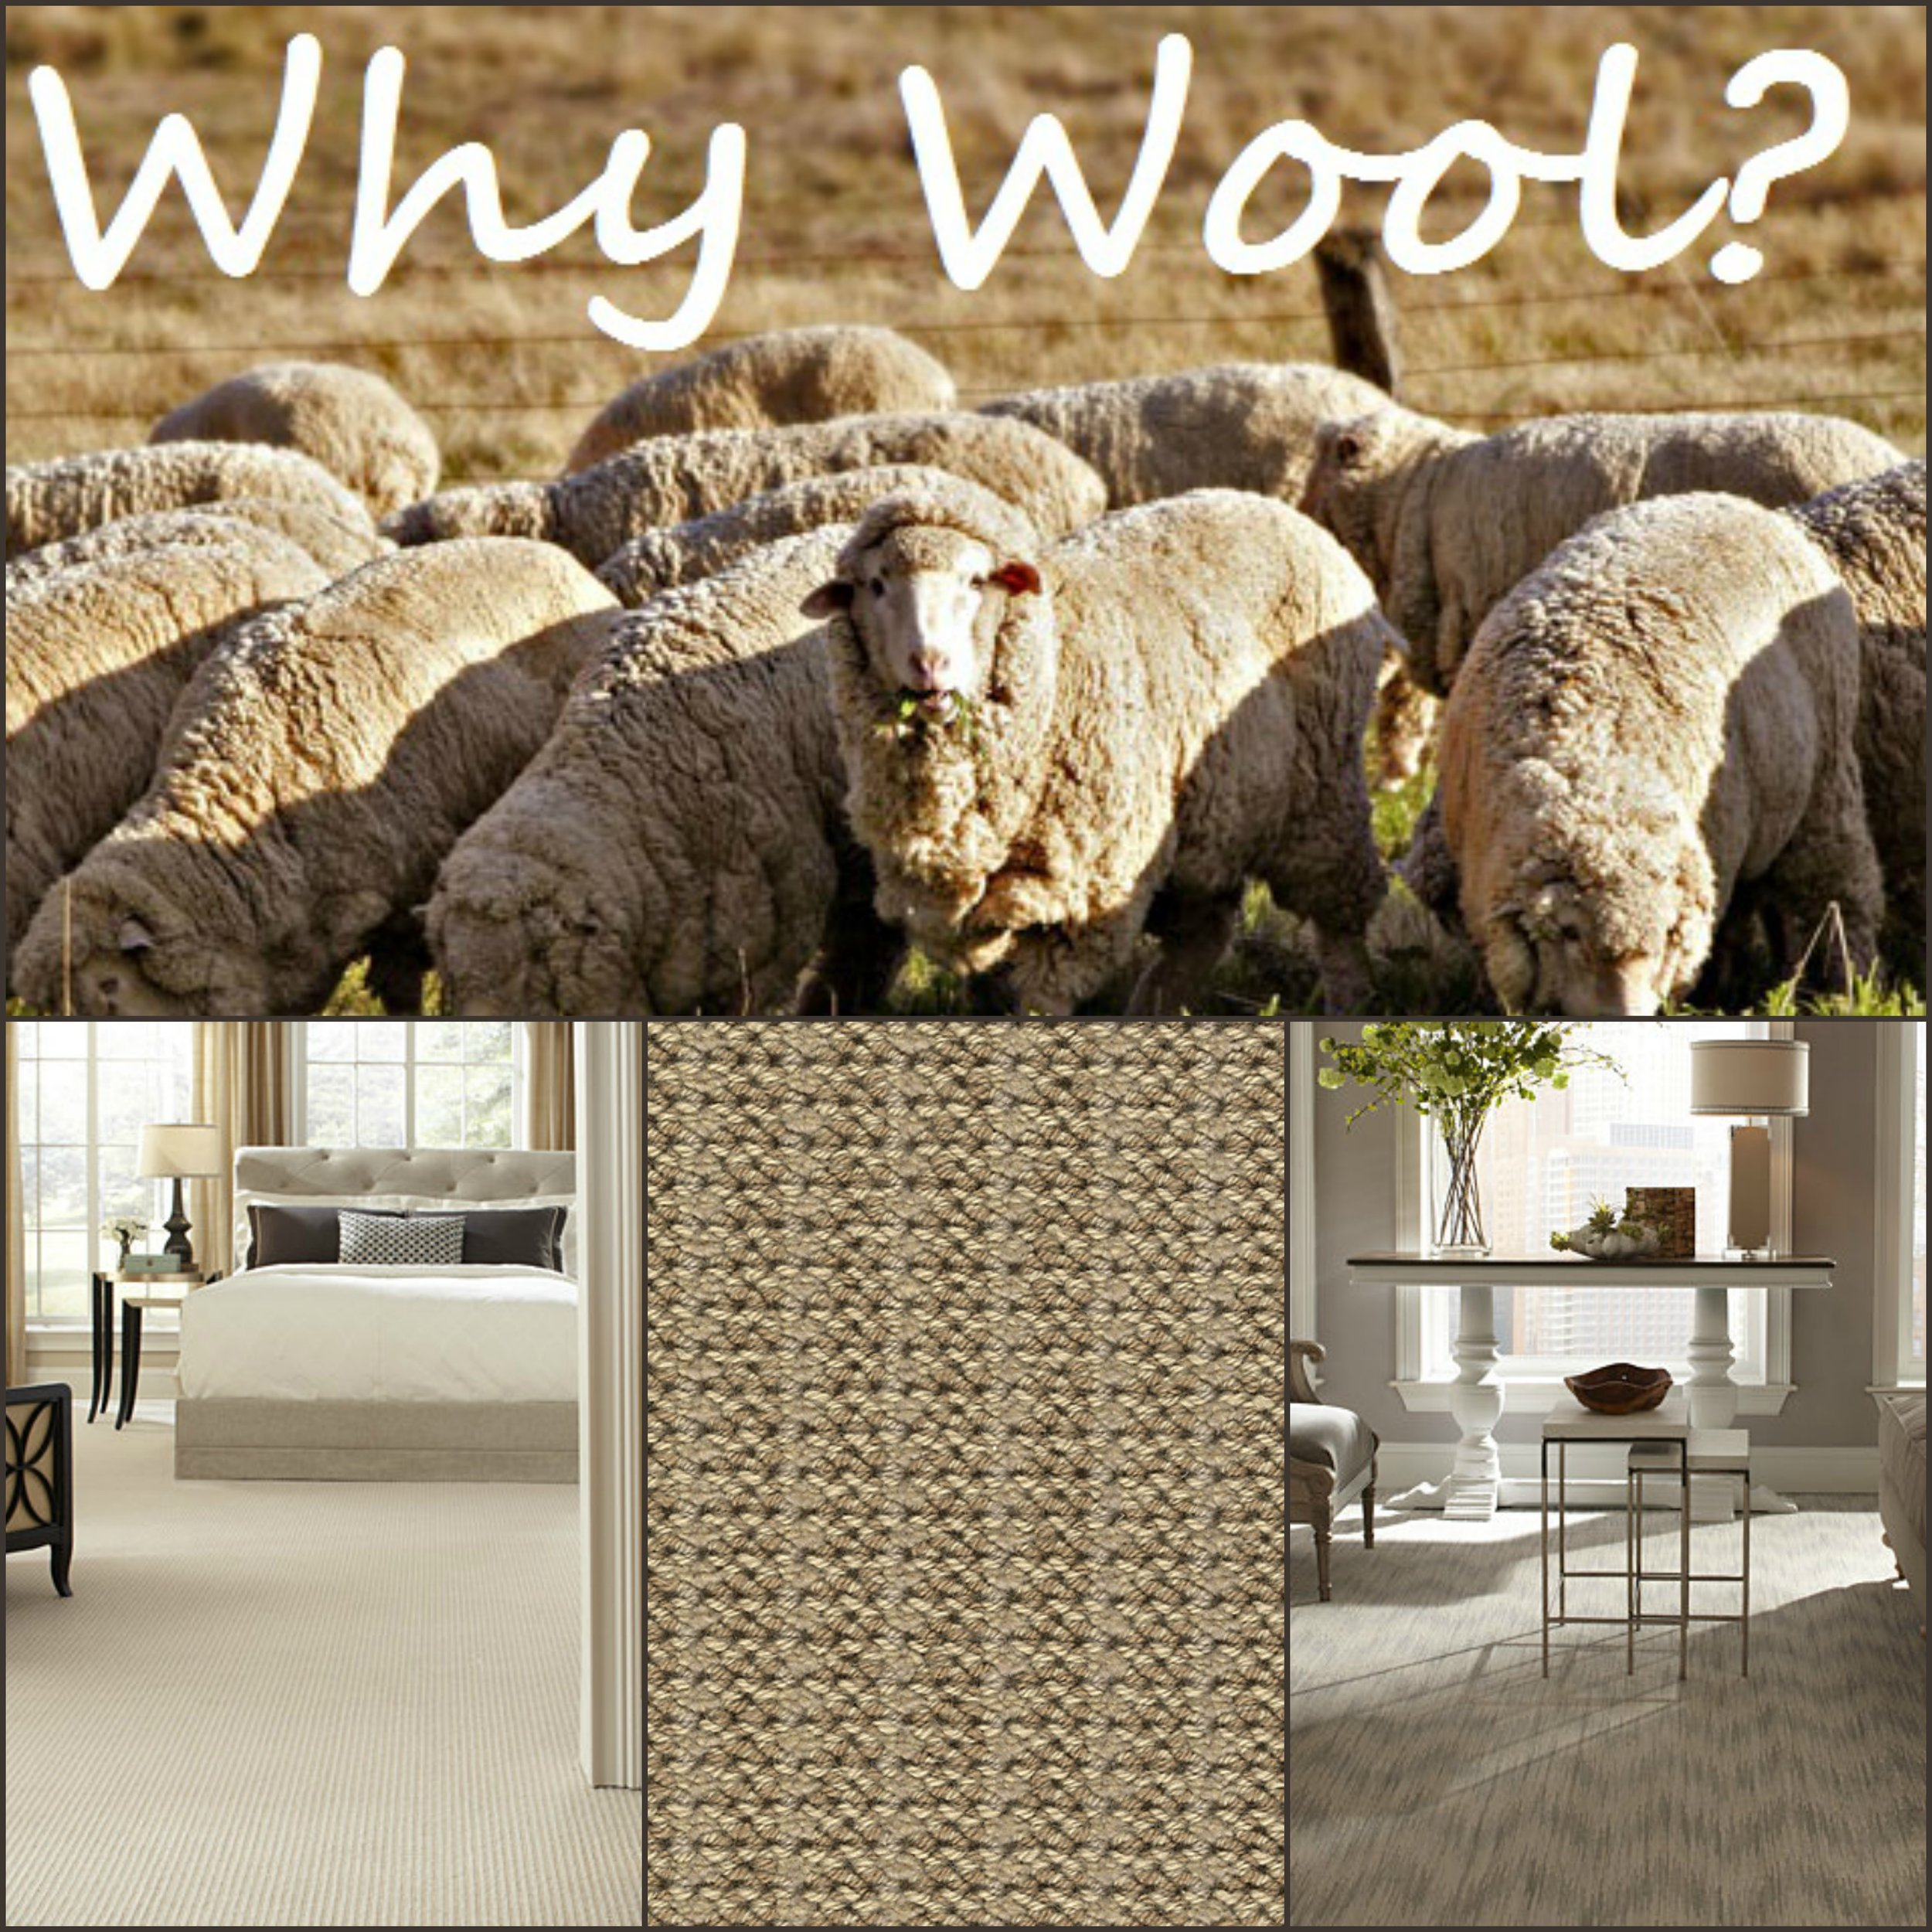 We host the largest selection of quality wool carpeting in our area featuring 100% New Zealand wool